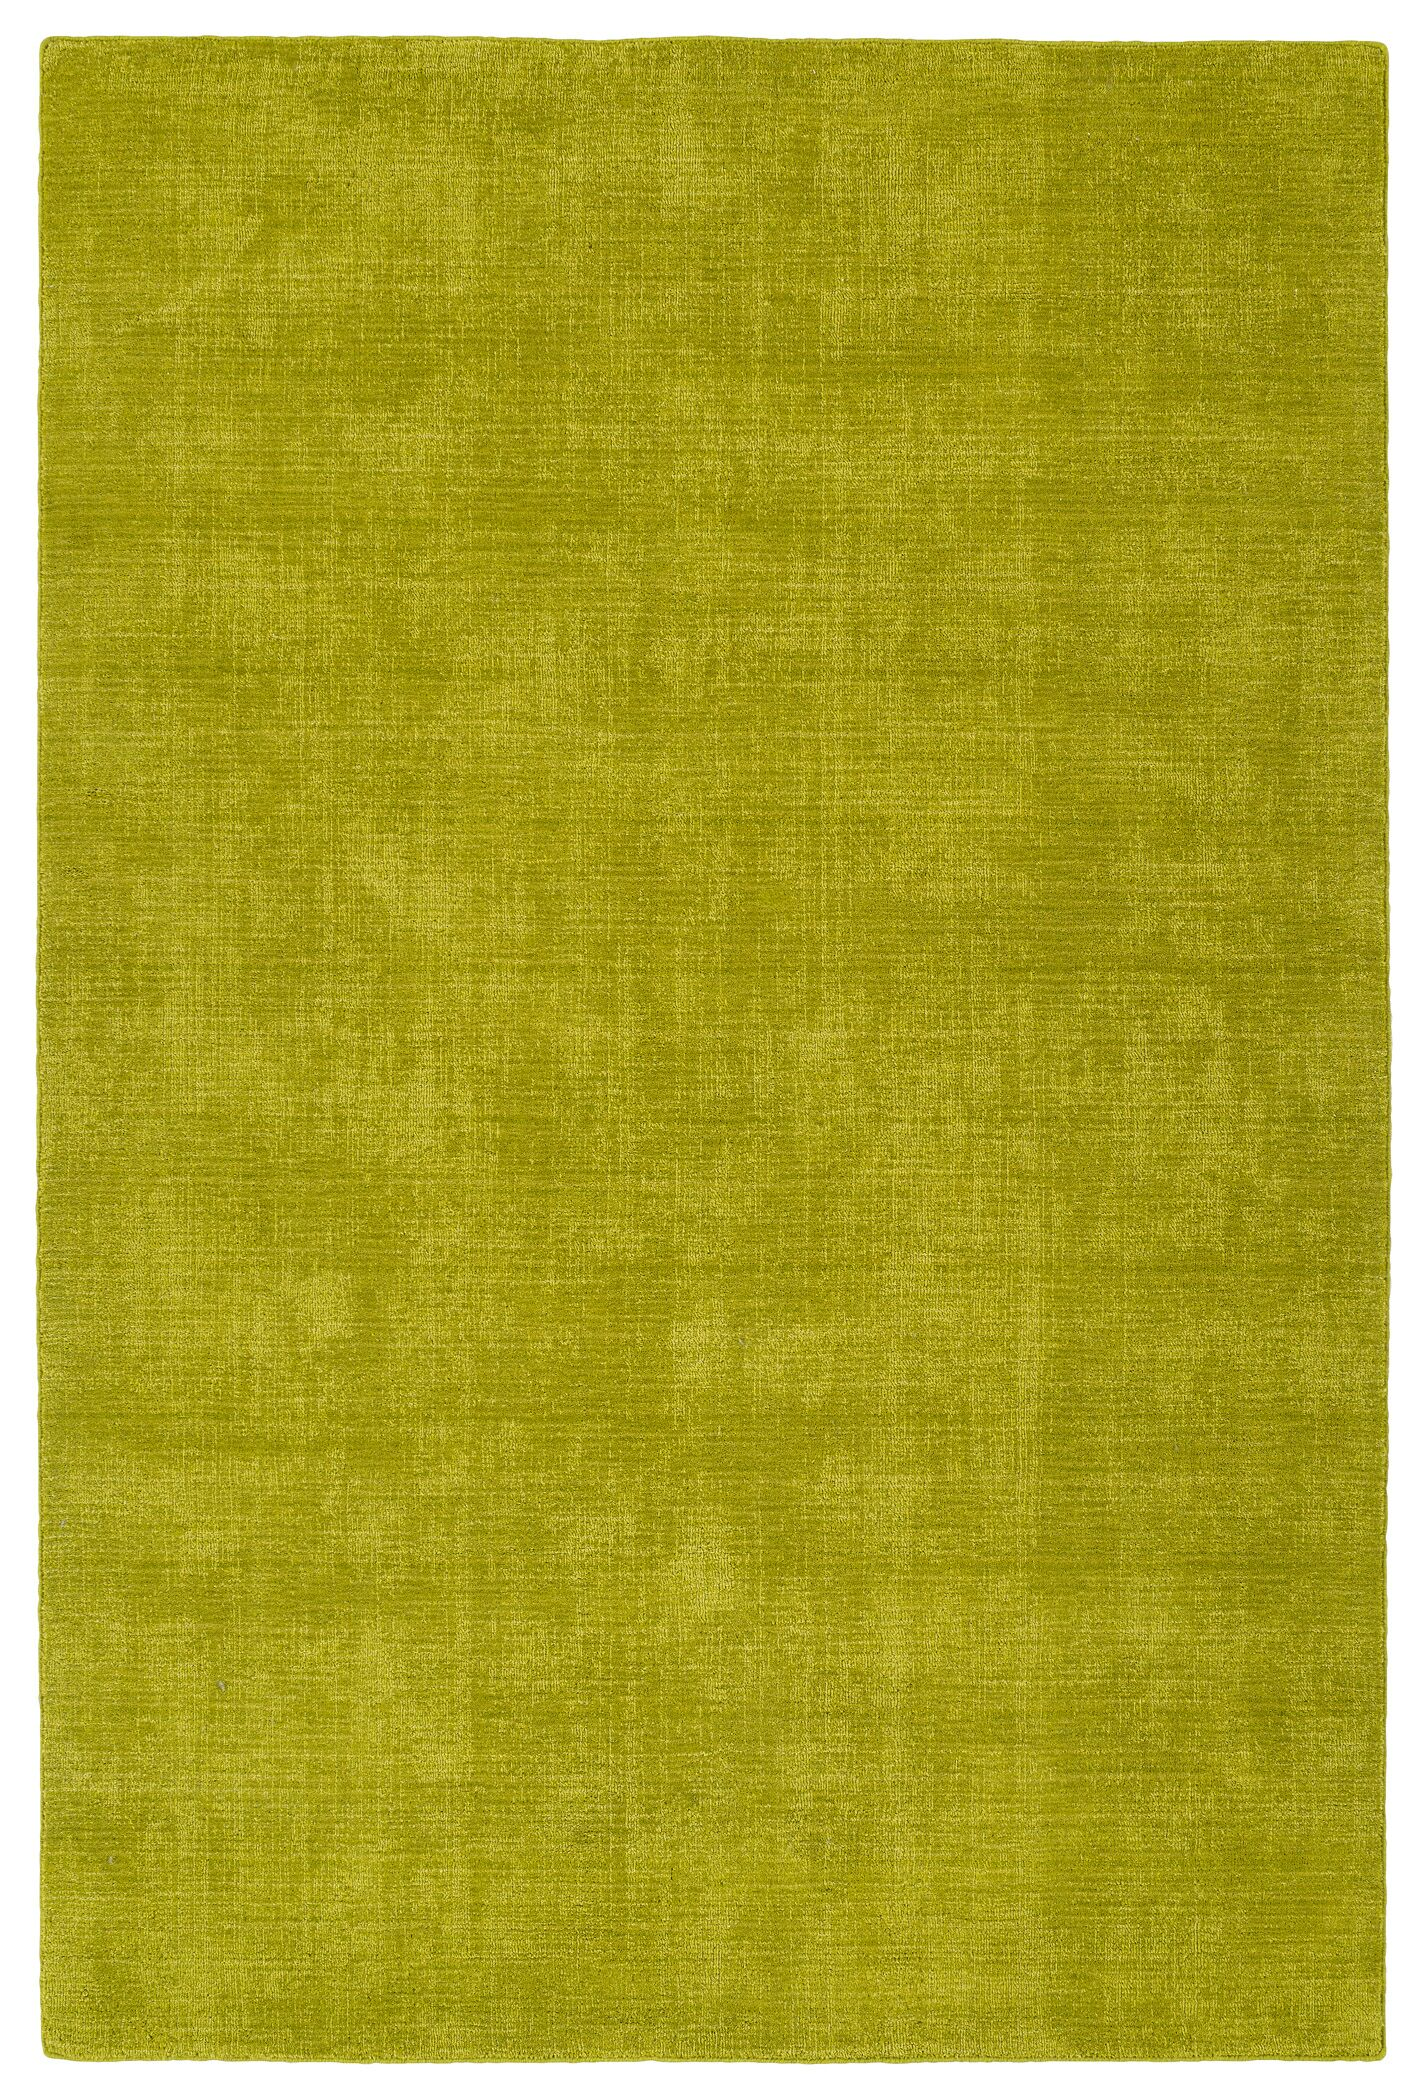 Allibert Hand-Loomed Lime Green Indoor/Outdoor Area Rug Rug Size: Rectangle 9' x 12'